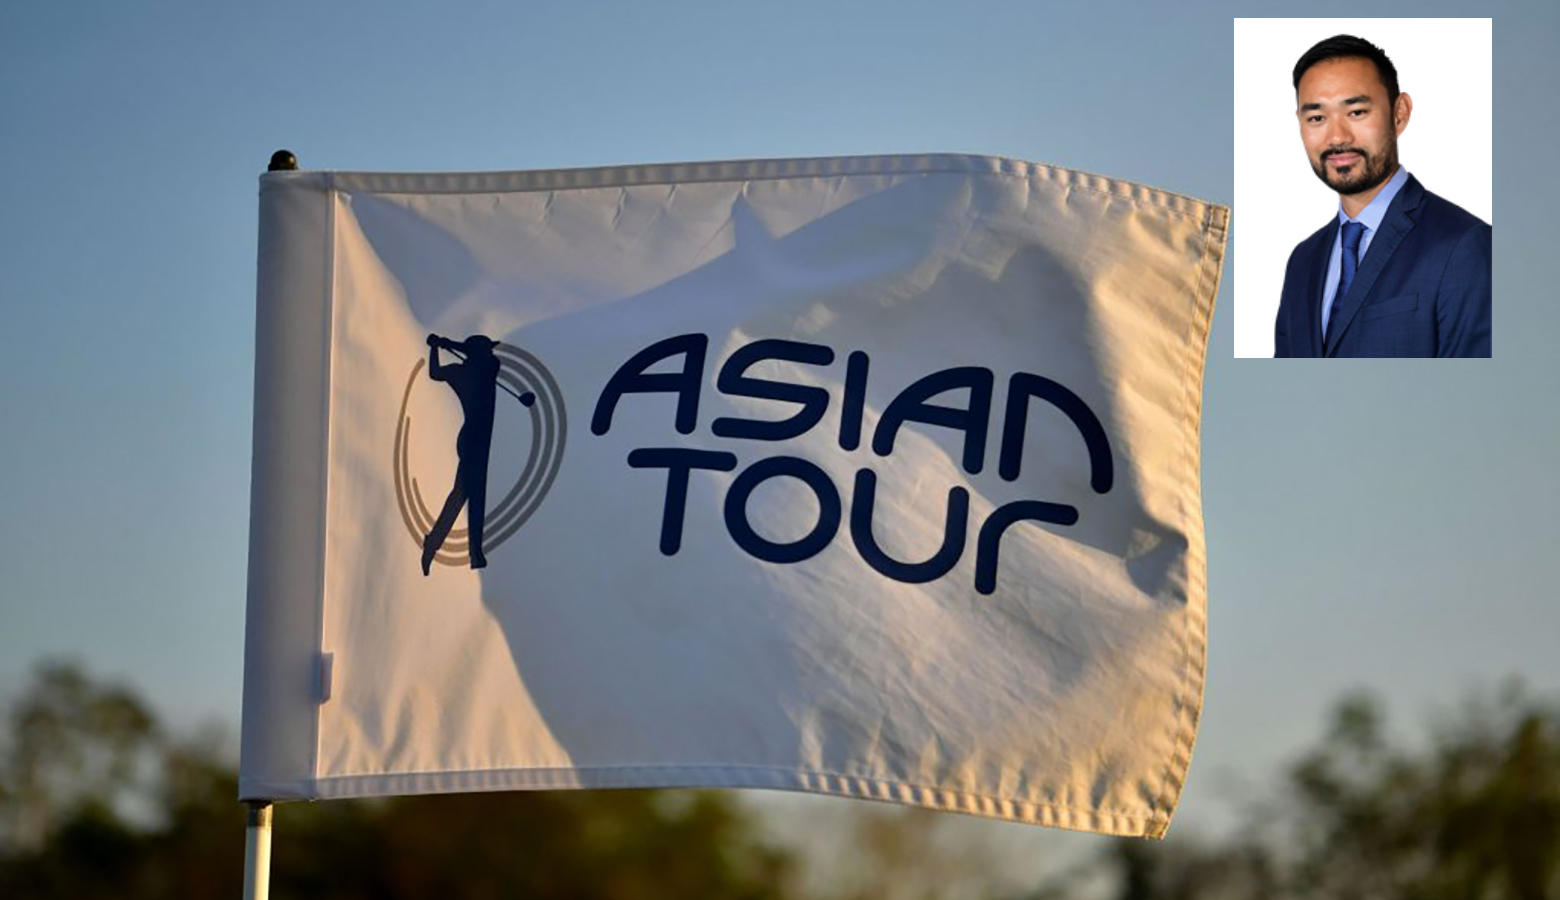 Asian Tour Commissioner and CEO's message to fans